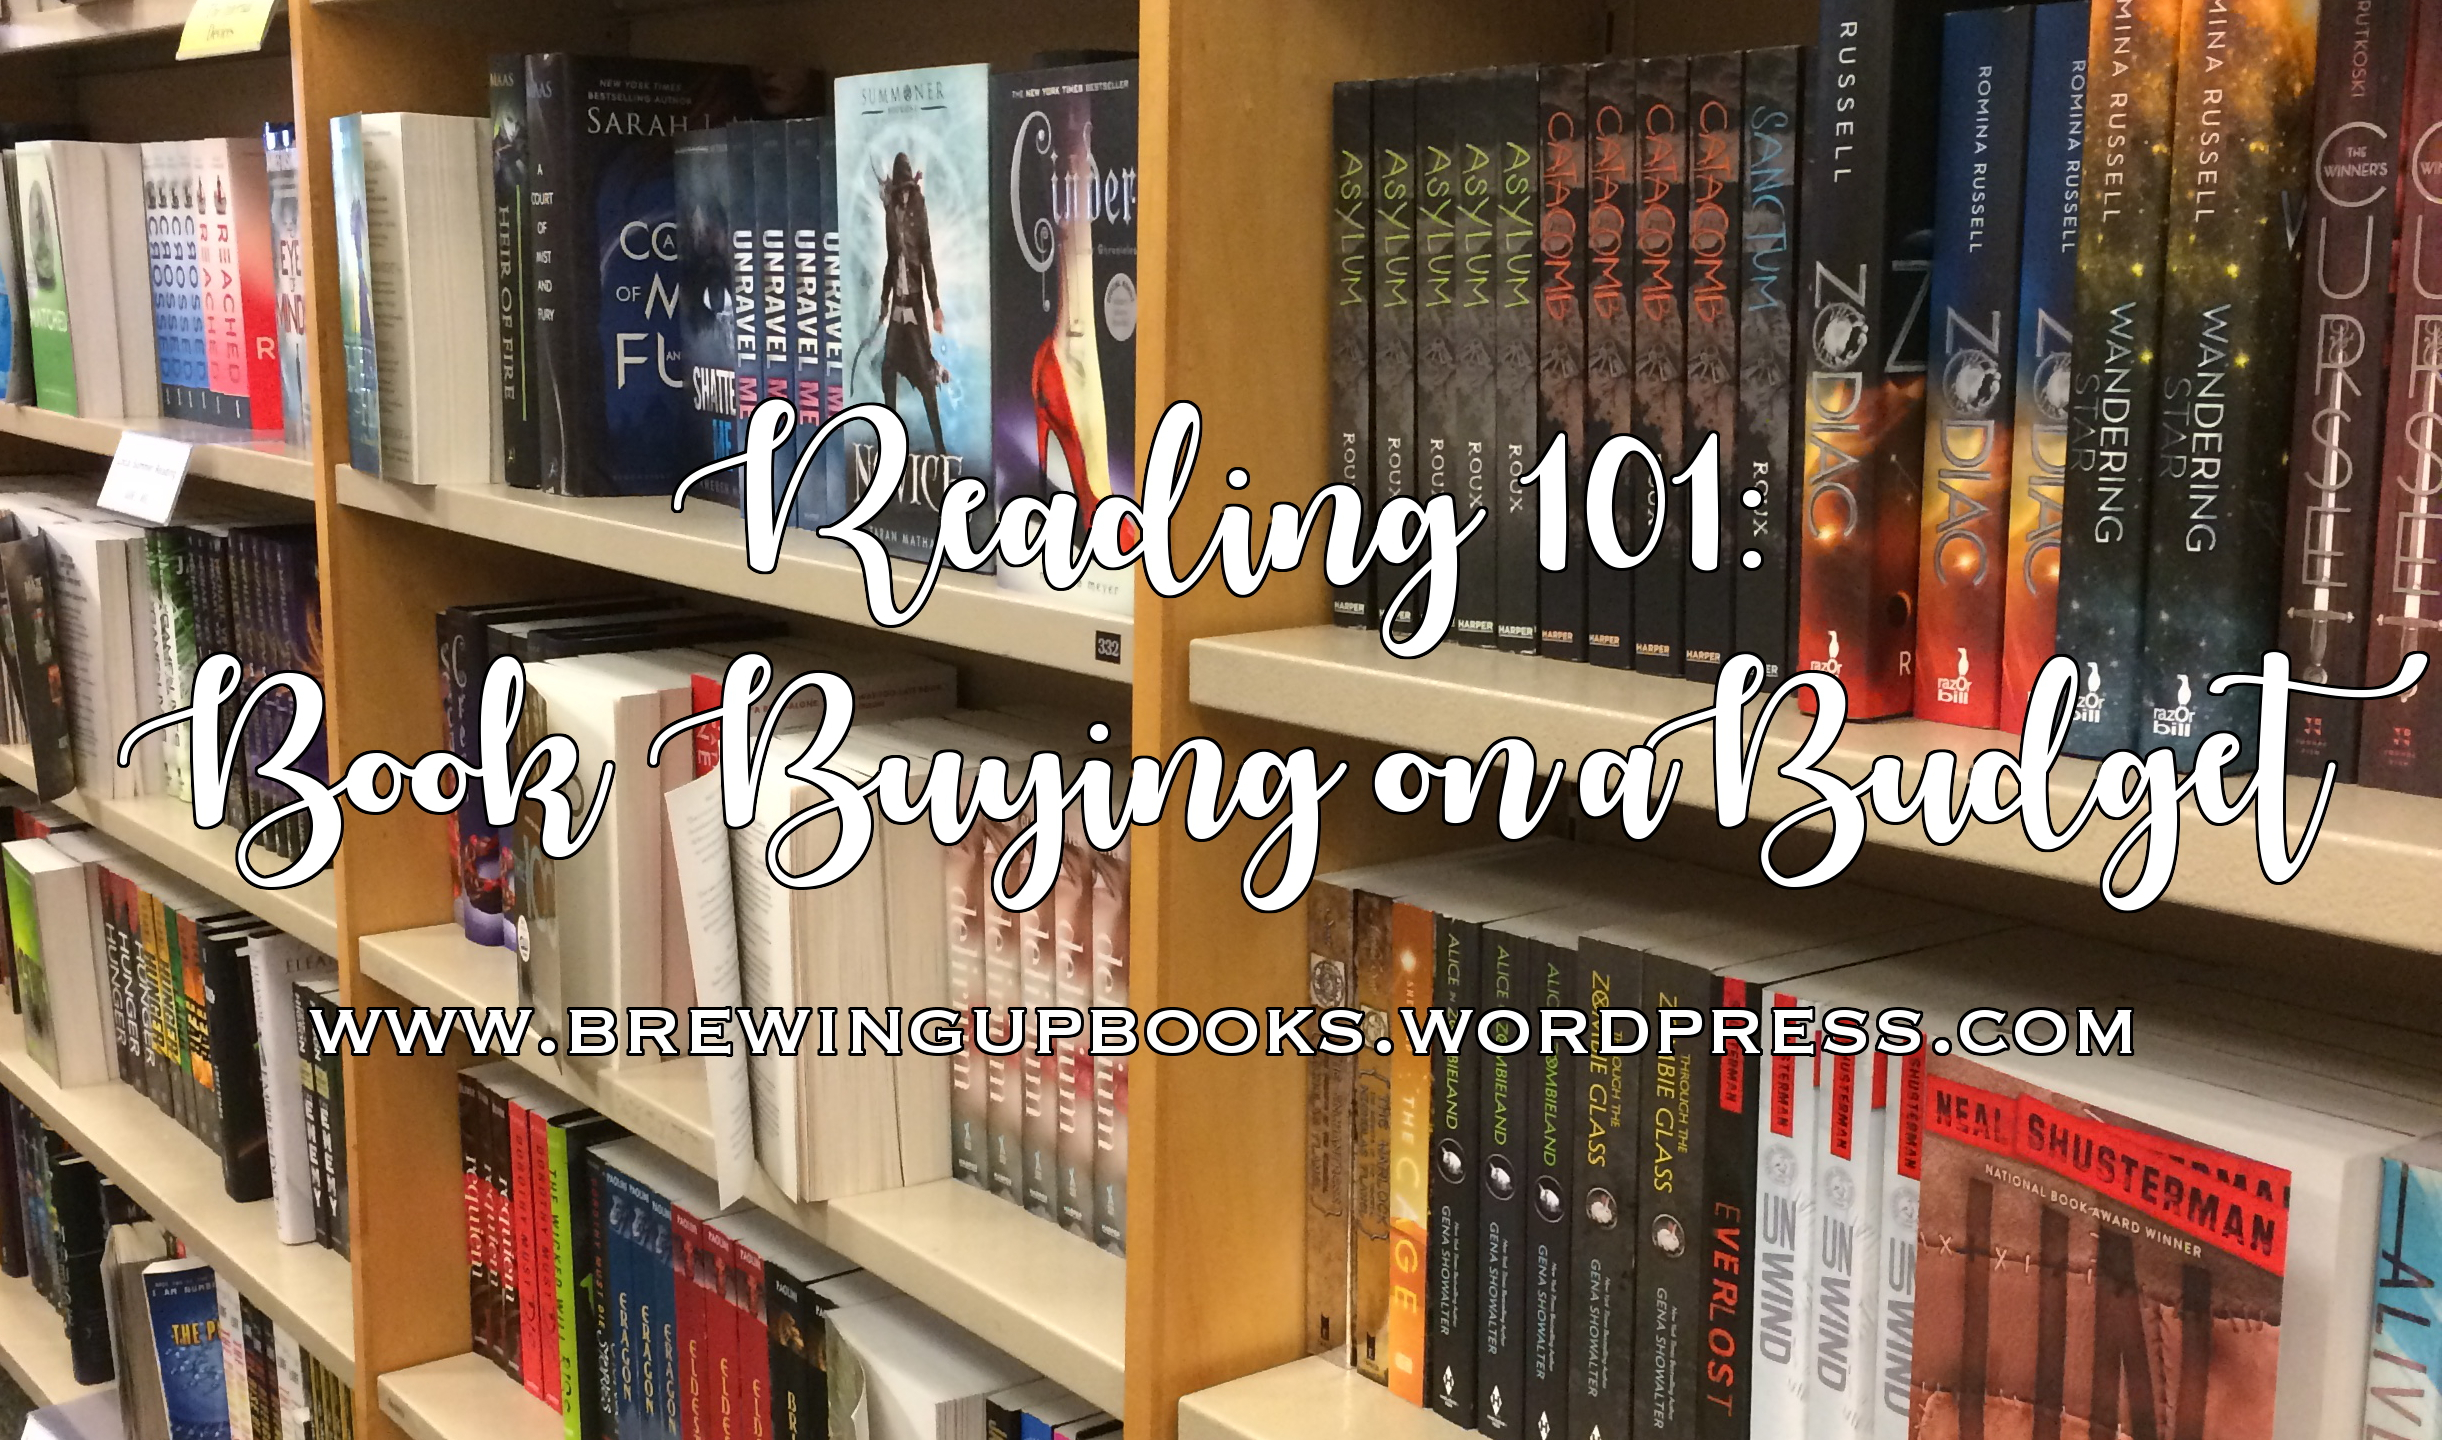 Book Buying on a Budget